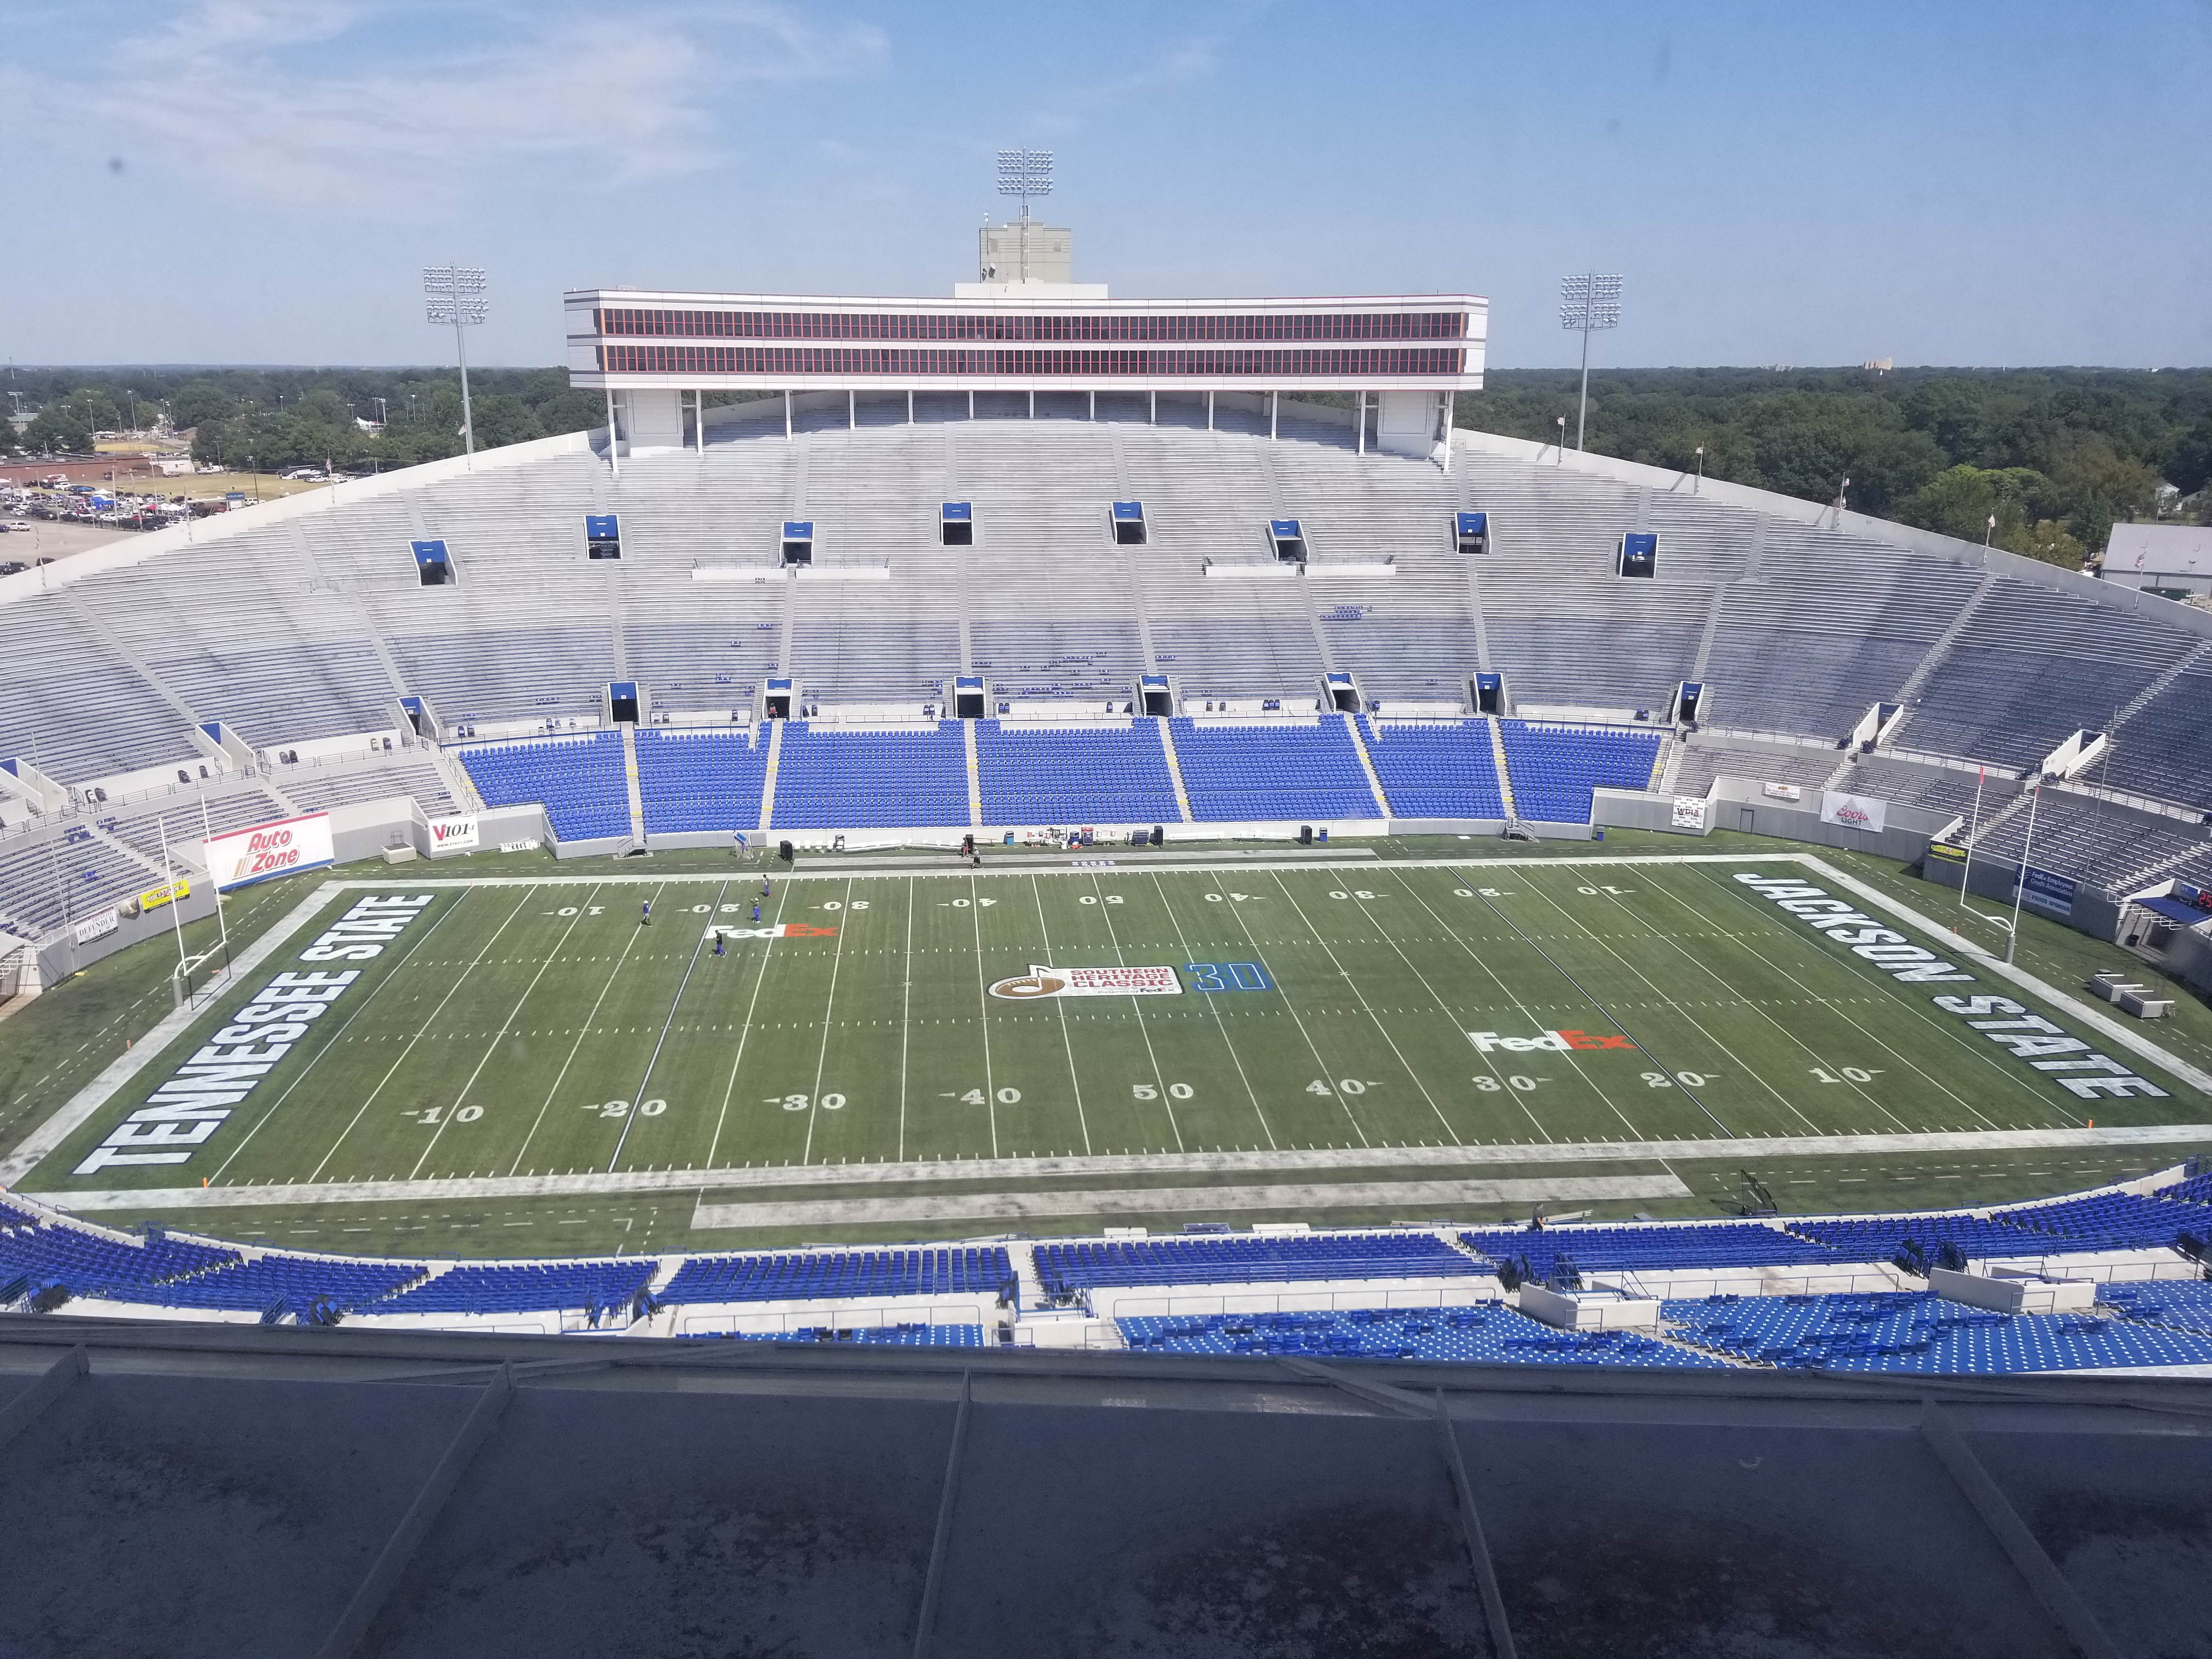 30th Annual Southern Heritage Classic at the Liberty Bowl Stadium